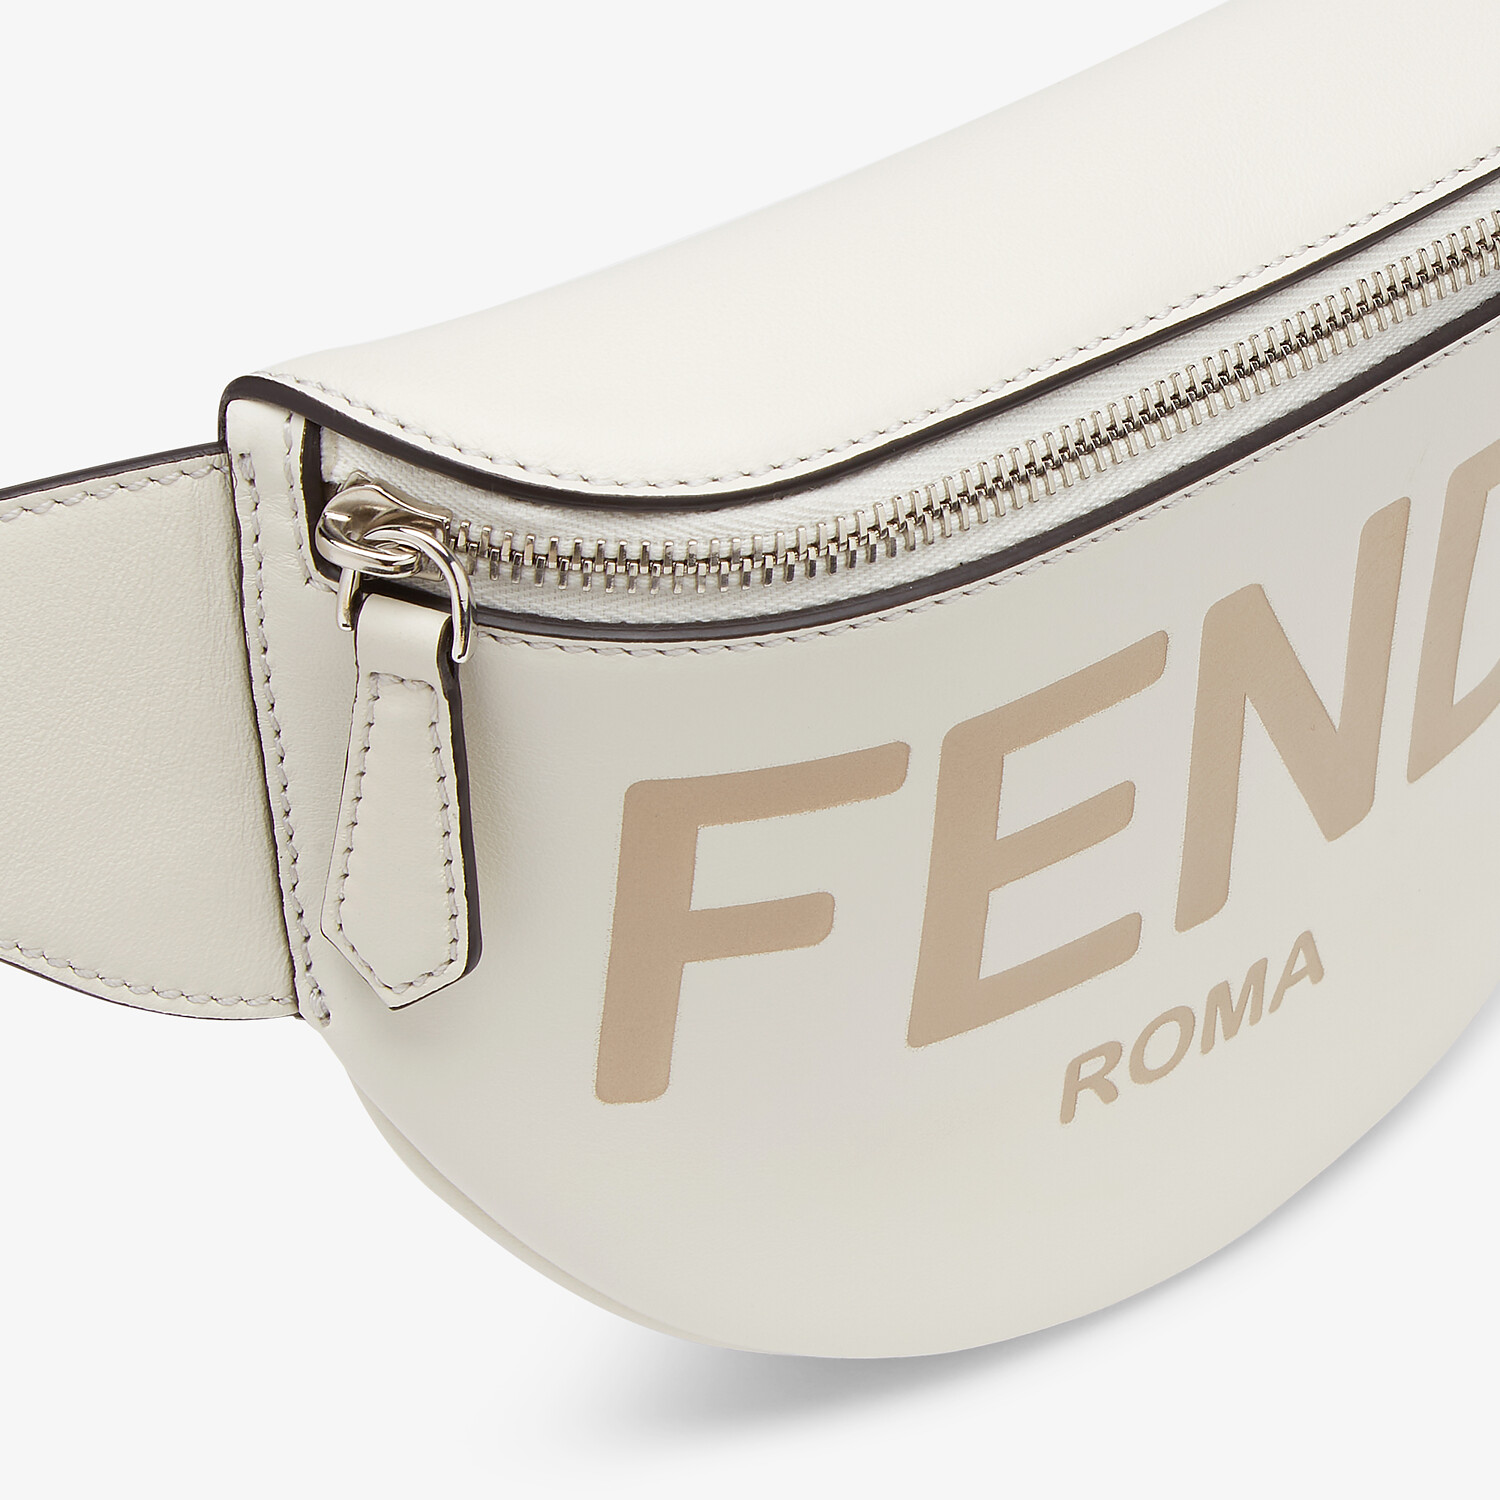 FENDI BELT BAG - White leather belt bag - view 4 detail